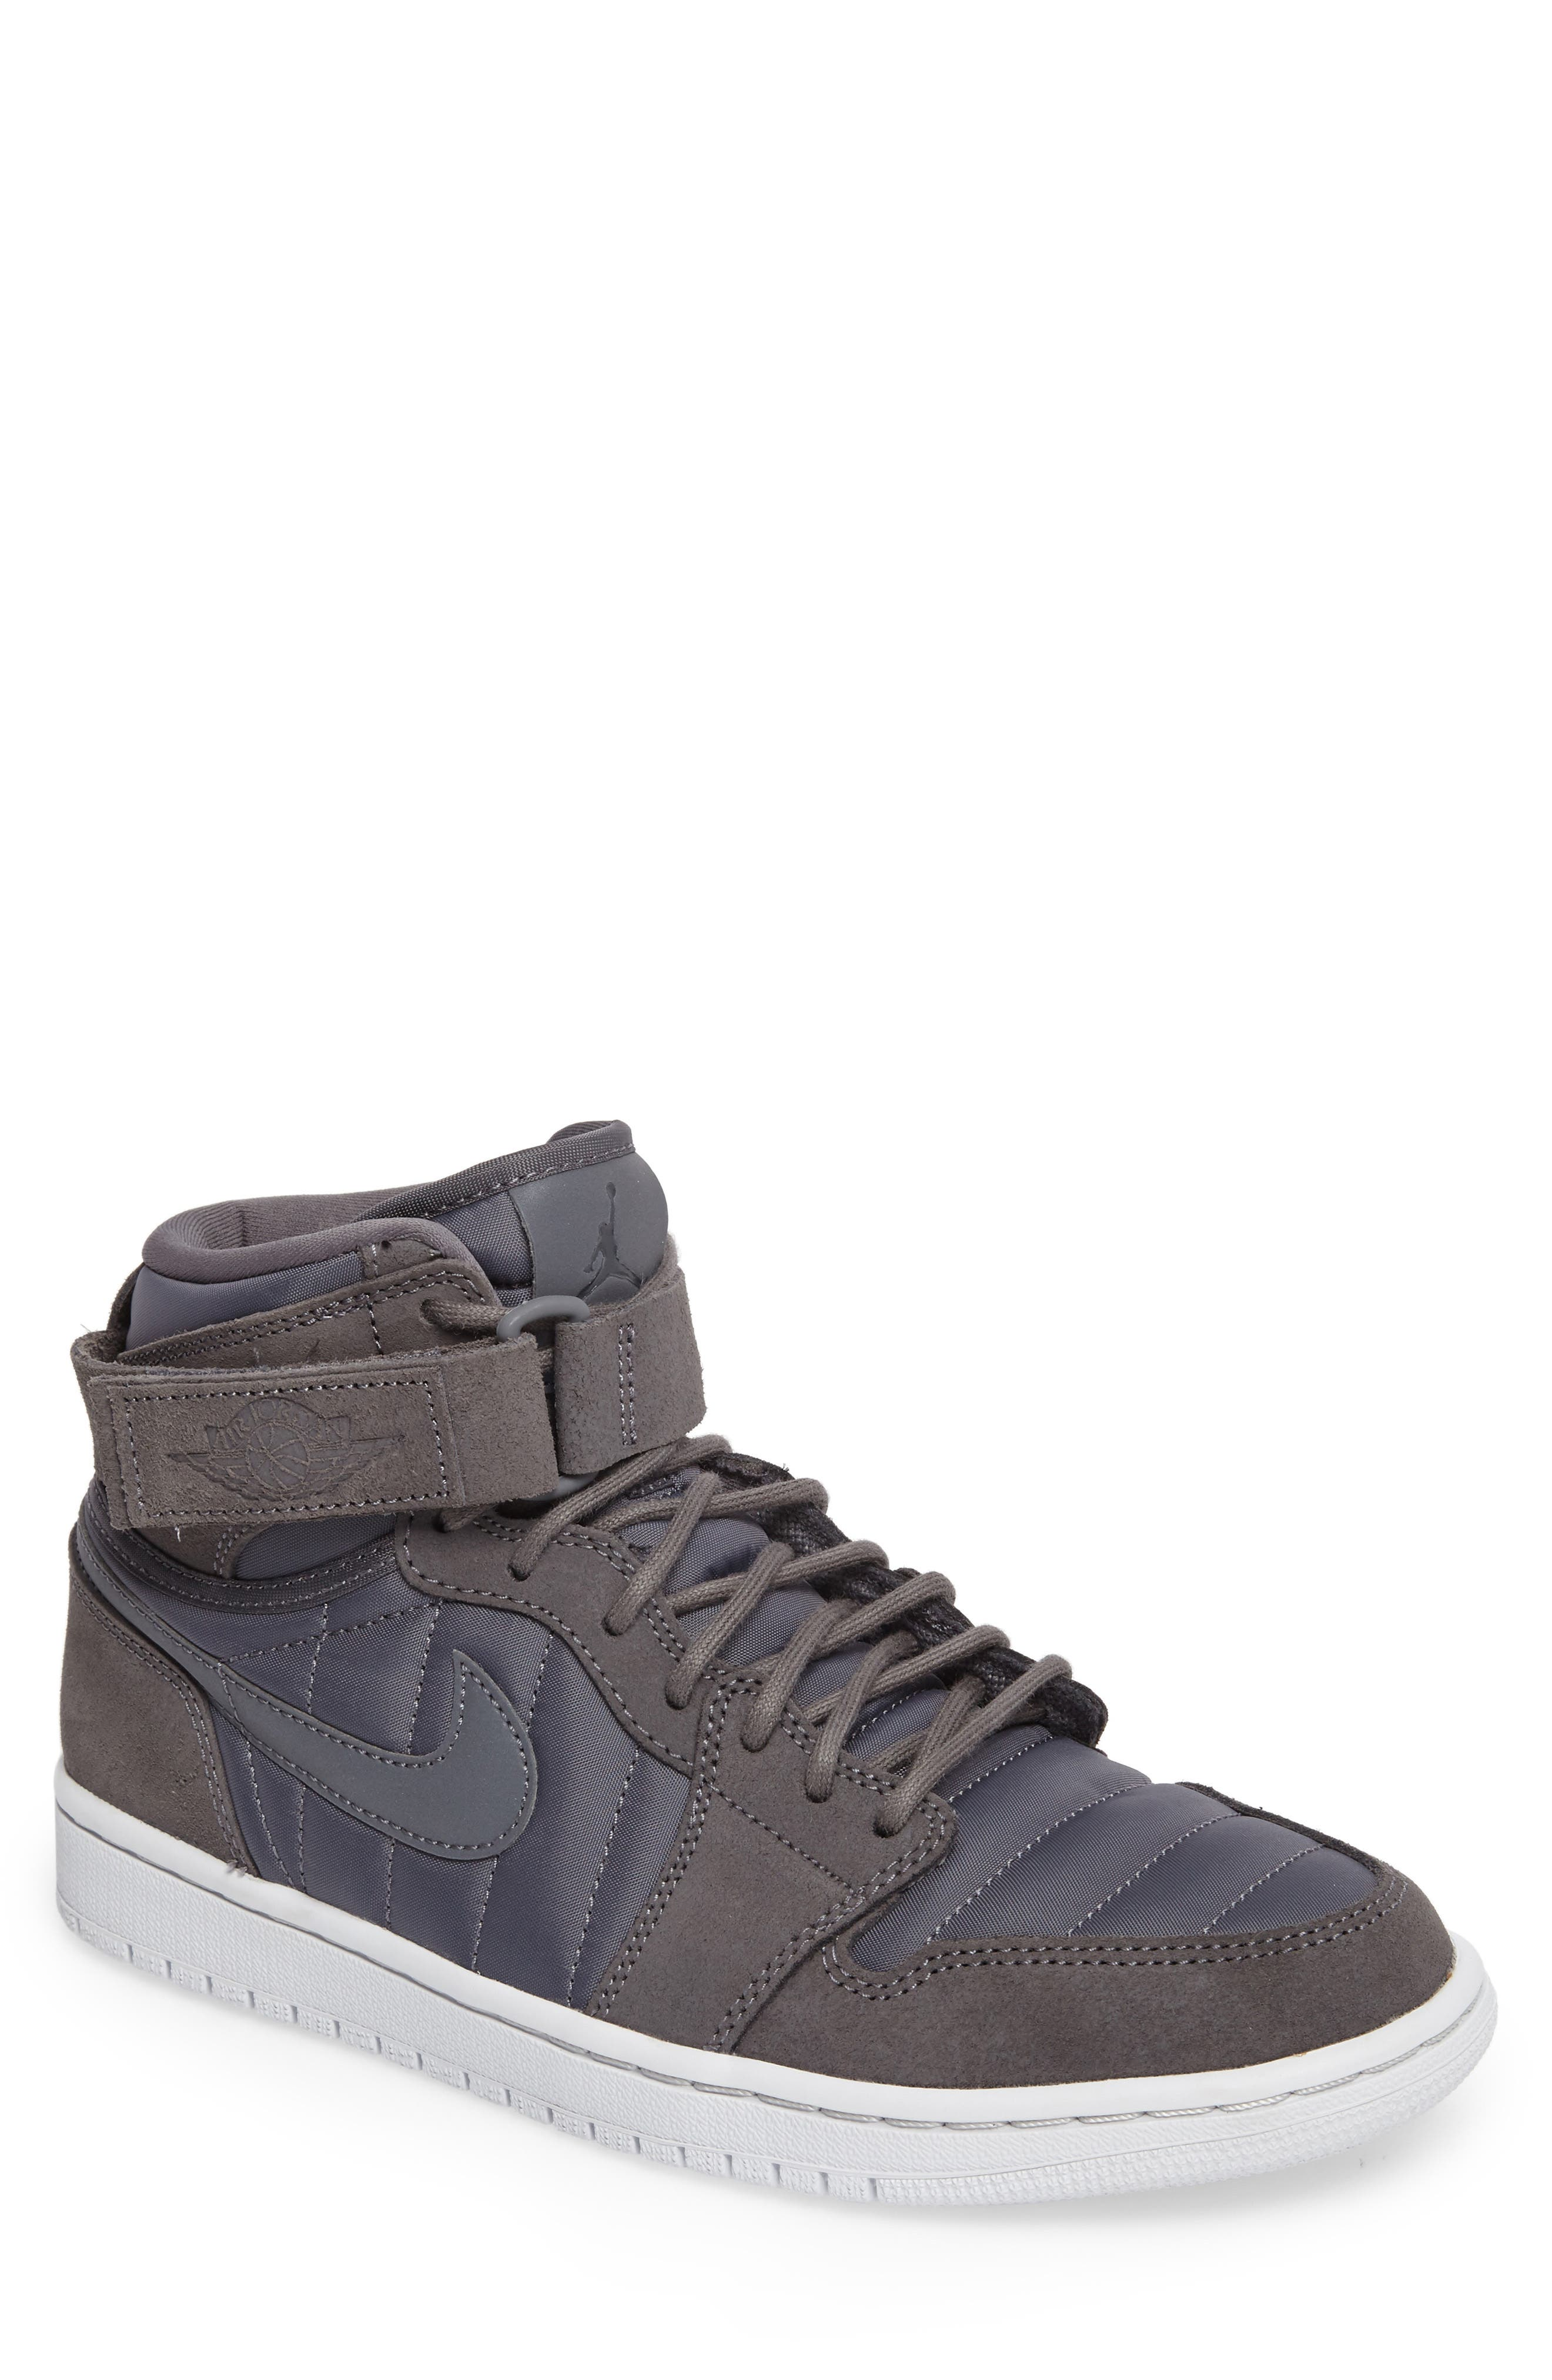 Air Jordan 1 Sneaker,                             Main thumbnail 1, color,                             Dark Grey/Anthracite/Platinum